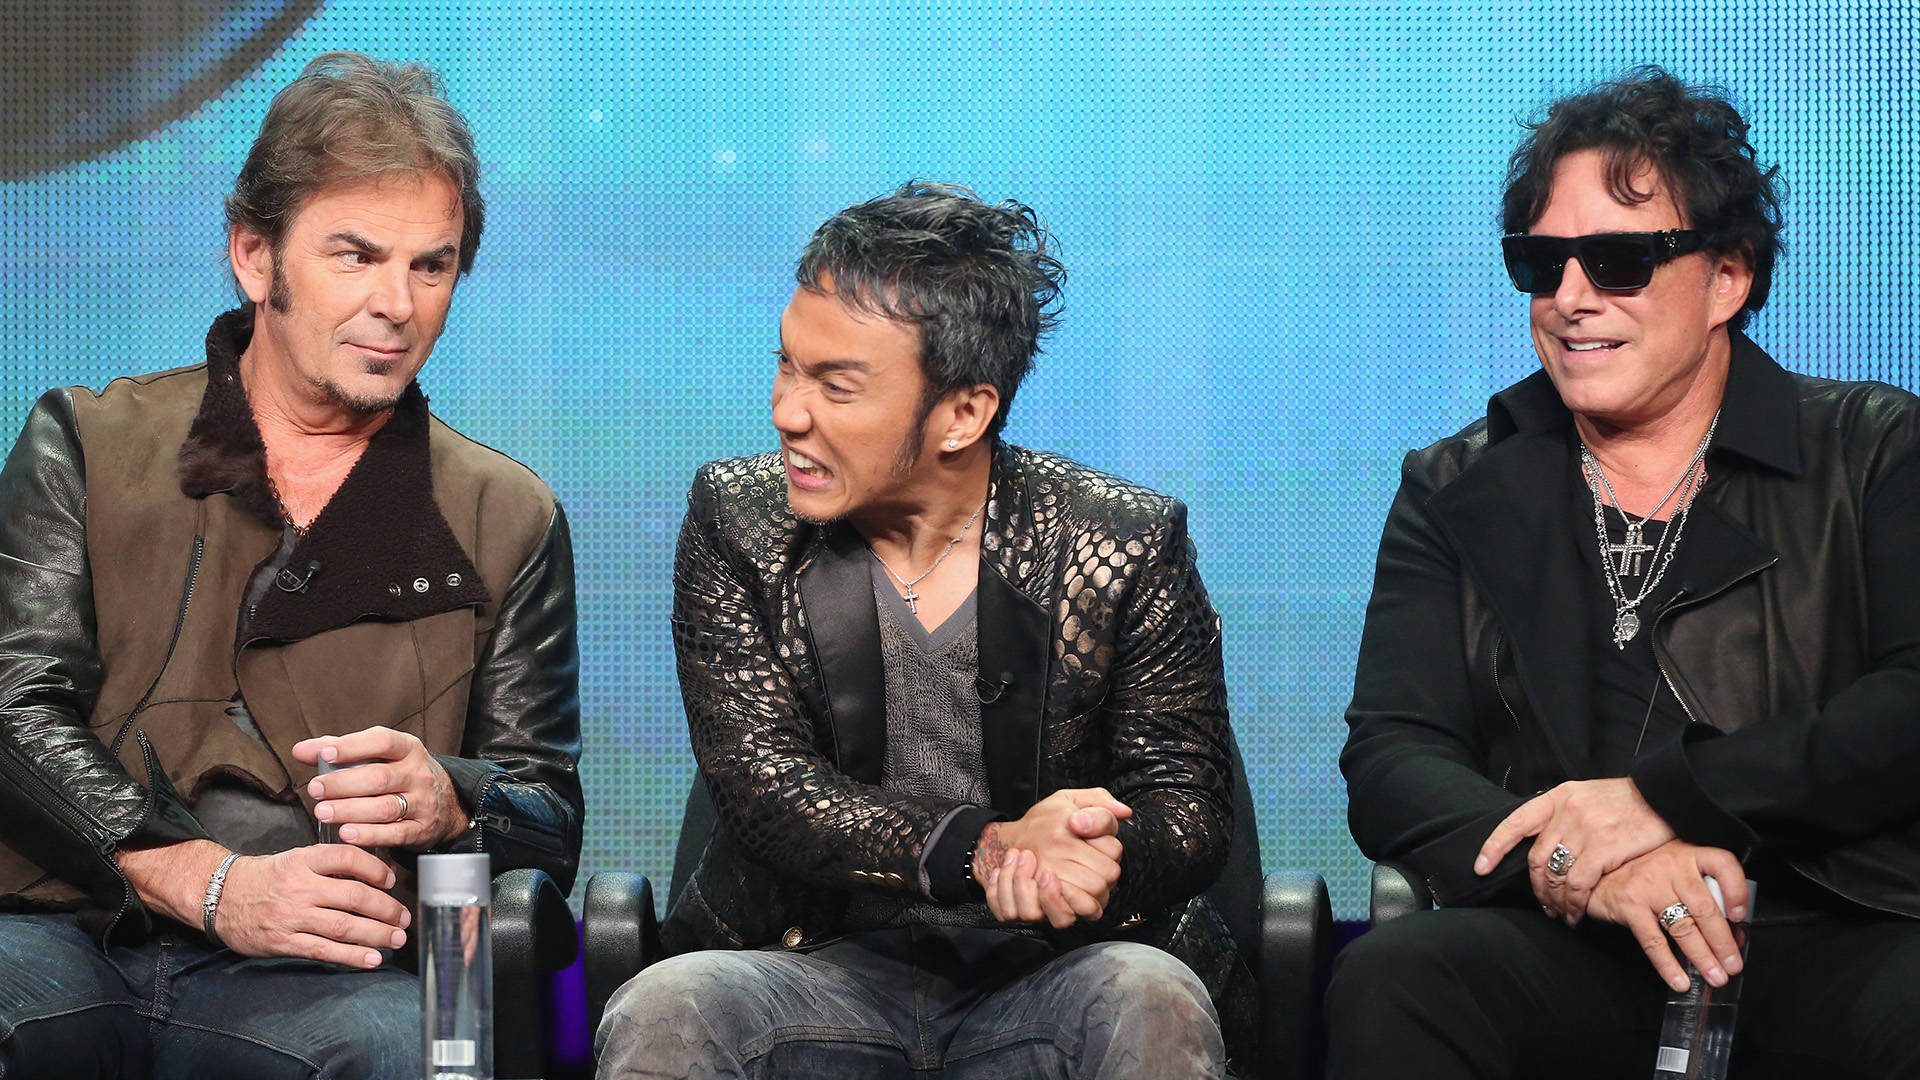 "(L-R) Keyboardist Jonathan Cain, lead vocalist Arnel Pineda and guitarist Neal Schon speak onstage during the ""Don't Stop Believin': Everyman's Journey"" panel at the PBS portion of the 2013 Summer Television Critics Association tour at the Beverly Hilton Hotel on August 6, 2013 in Beverly Hills, California.   Photo: Frederick M. Brown/Getty Images"